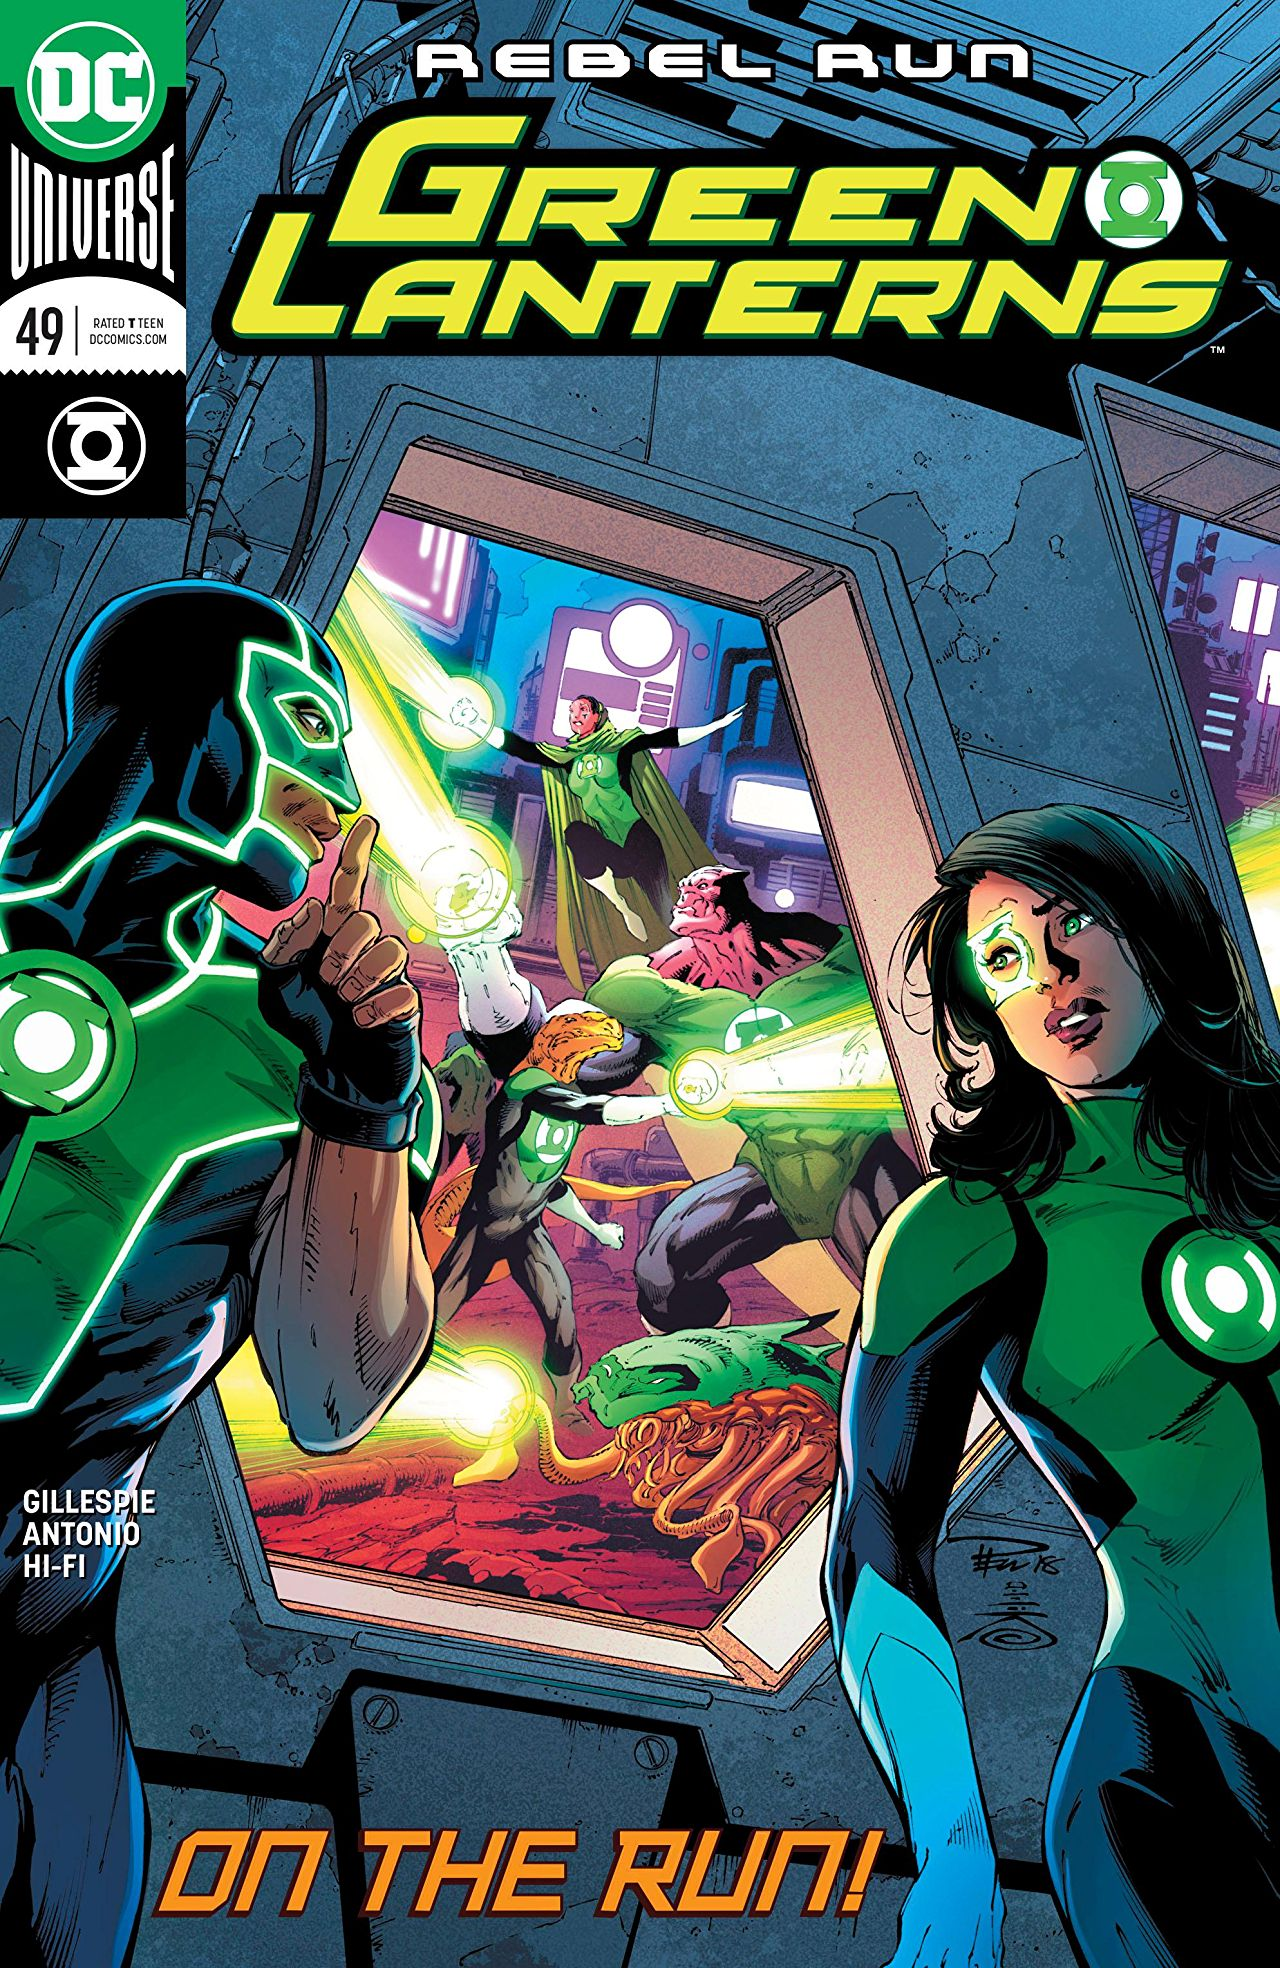 Green Lanterns #49 review: Doesn't get more average than this